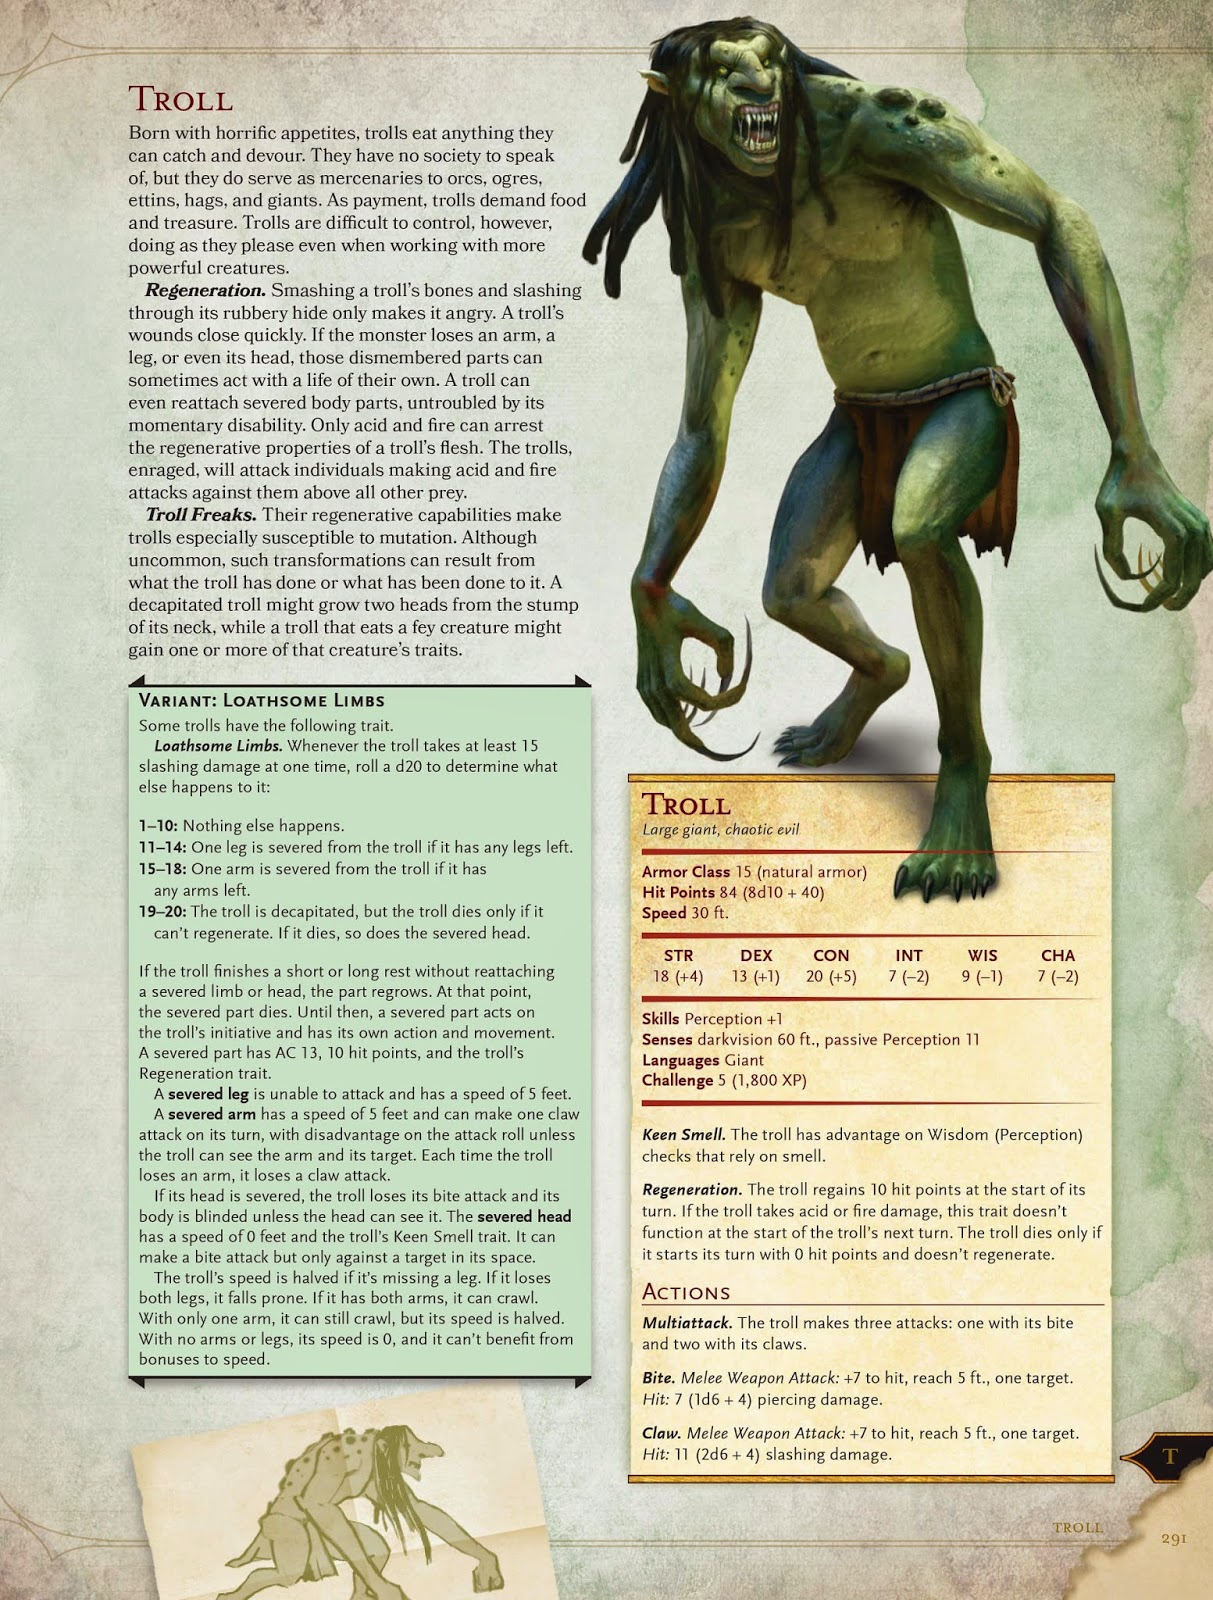 D&D Monster Manual Entry for the Troll.